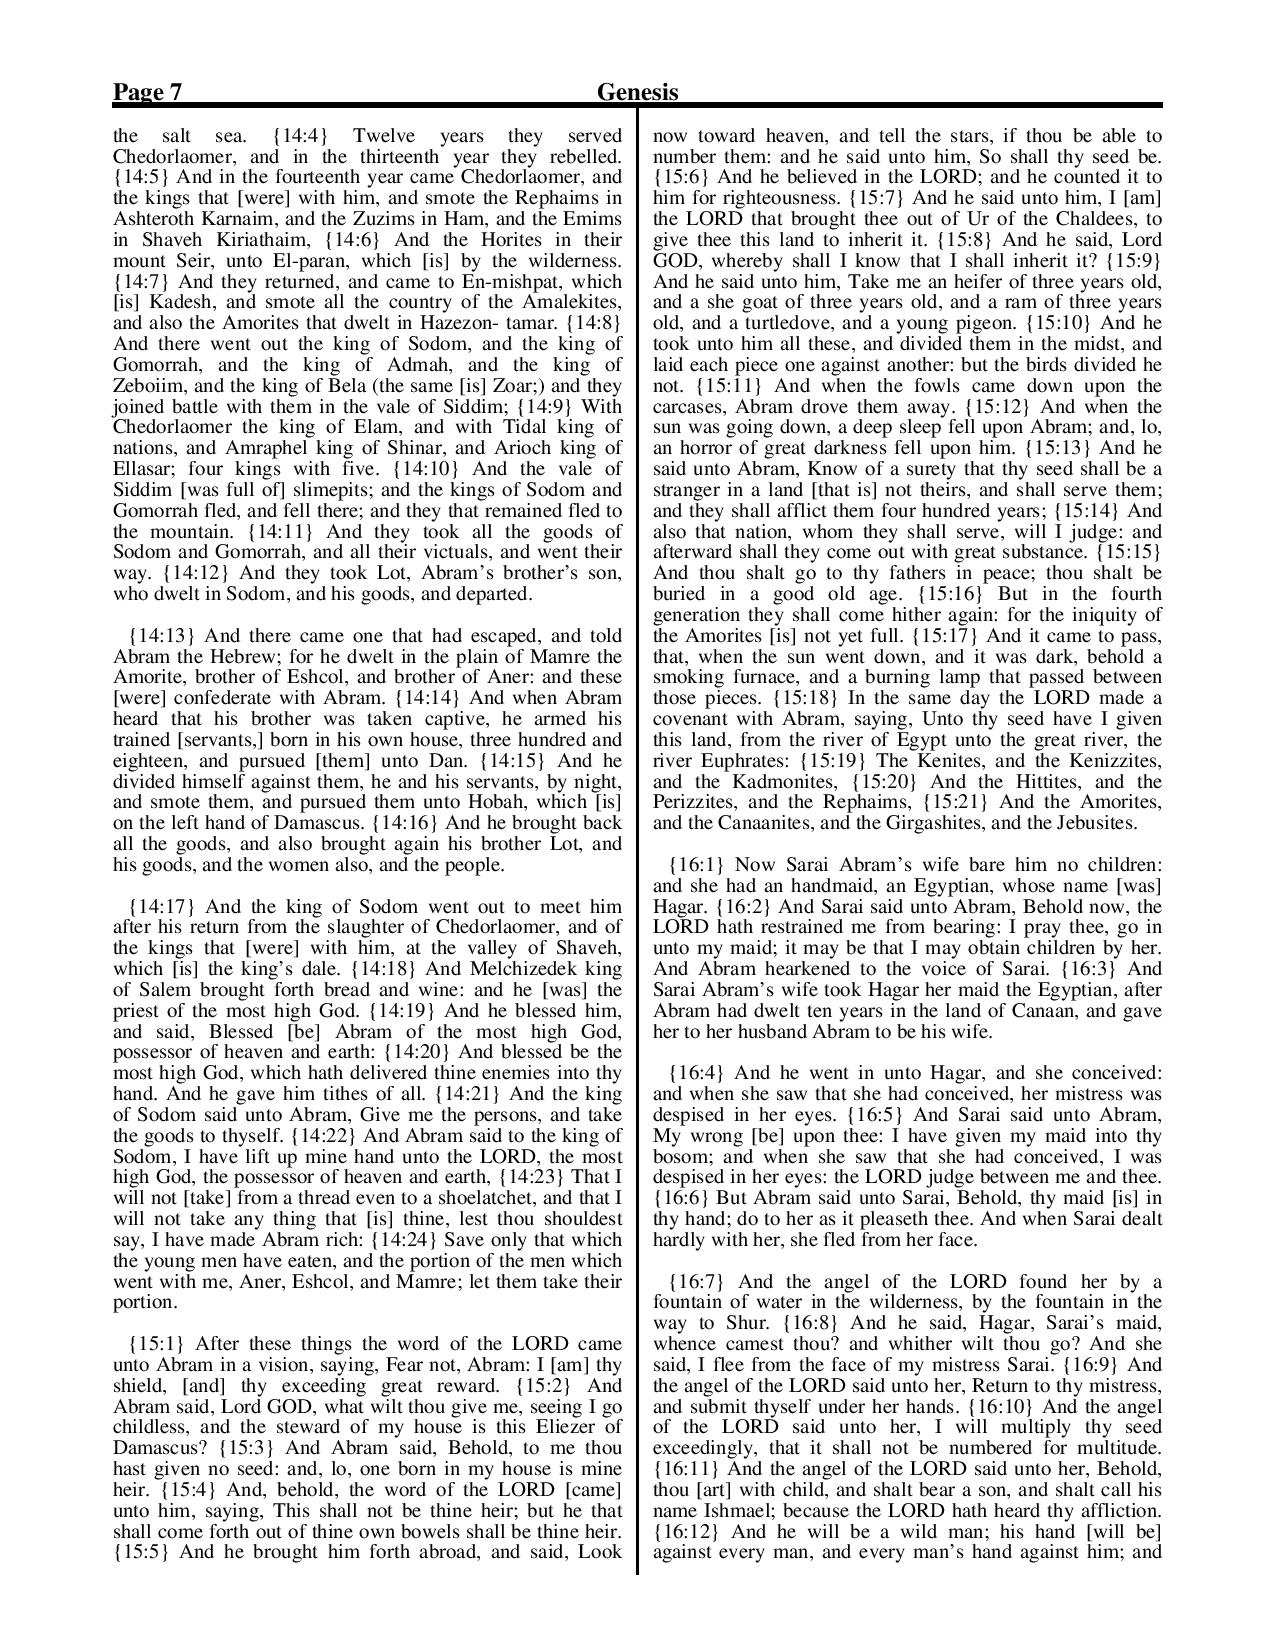 King-James-Bible-KJV-Bible-PDF-page-028